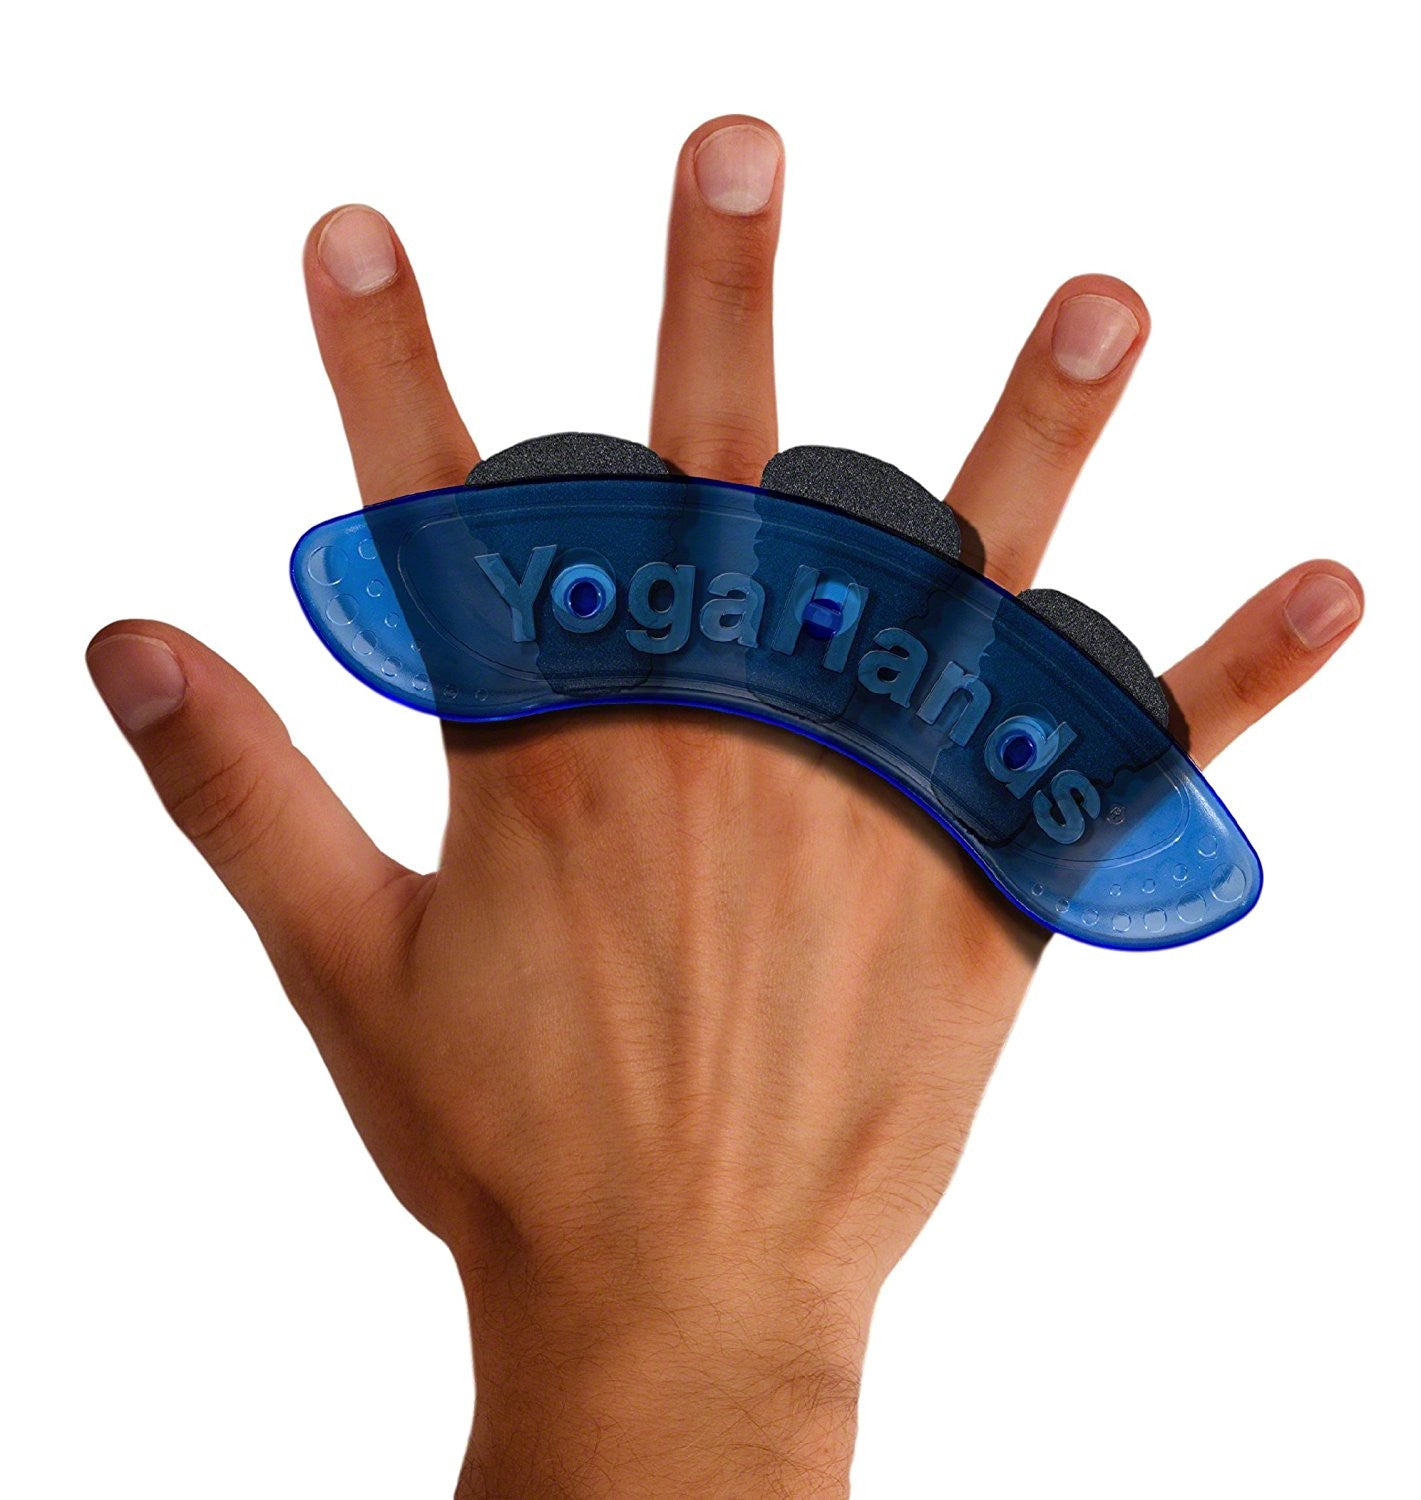 spread fingers in YogaHands wrist and hand exerciser device